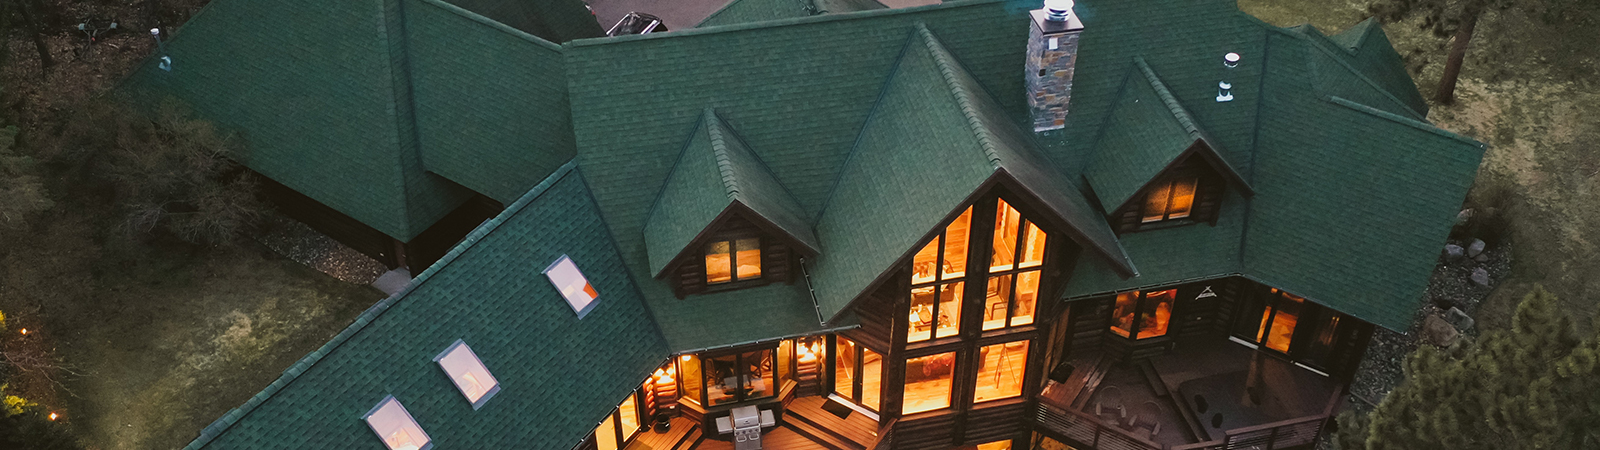 Residential Roofing in Plymouth, MN